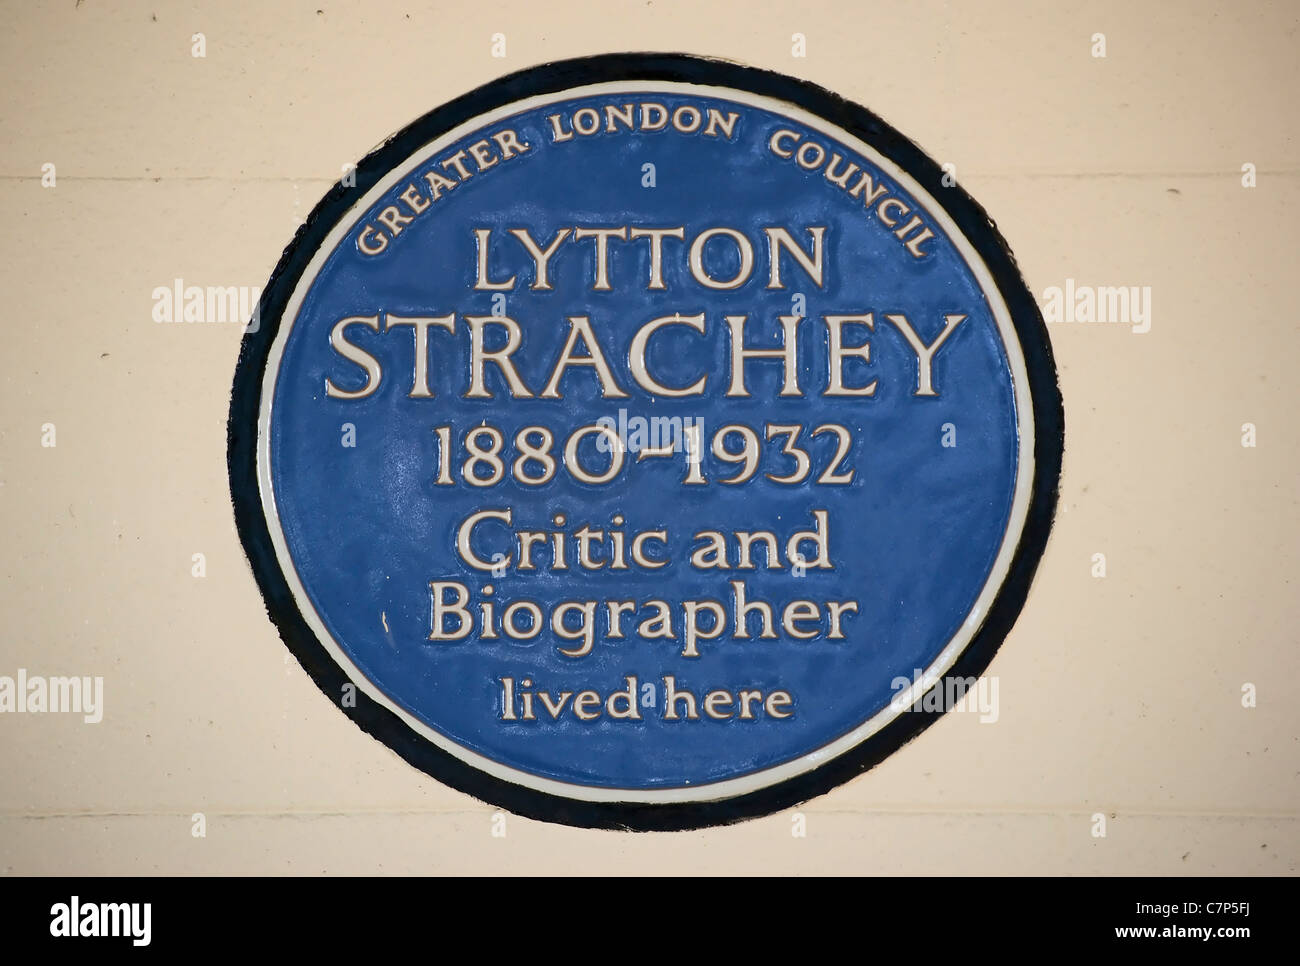 greater london council blue plaque marking a home of critic and biographer lytton strachey, gordon square, london, england Stock Photo